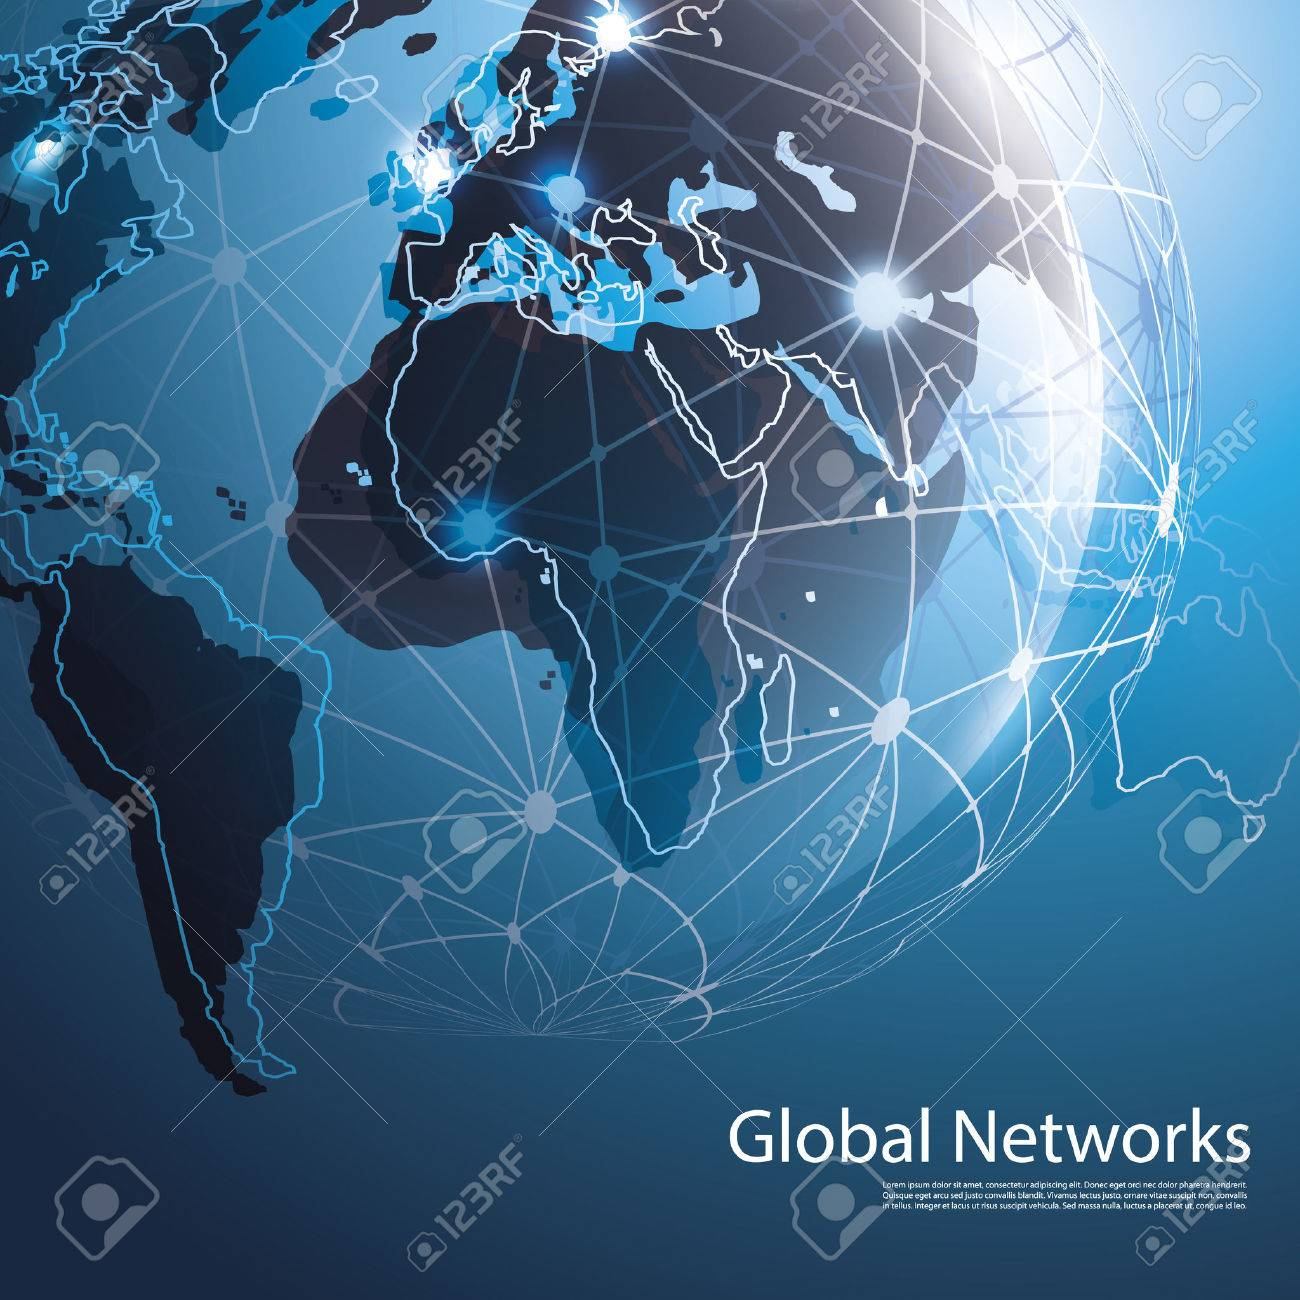 Global Networks - EPS10 Vector for Your Business Stock Vector - 27144814